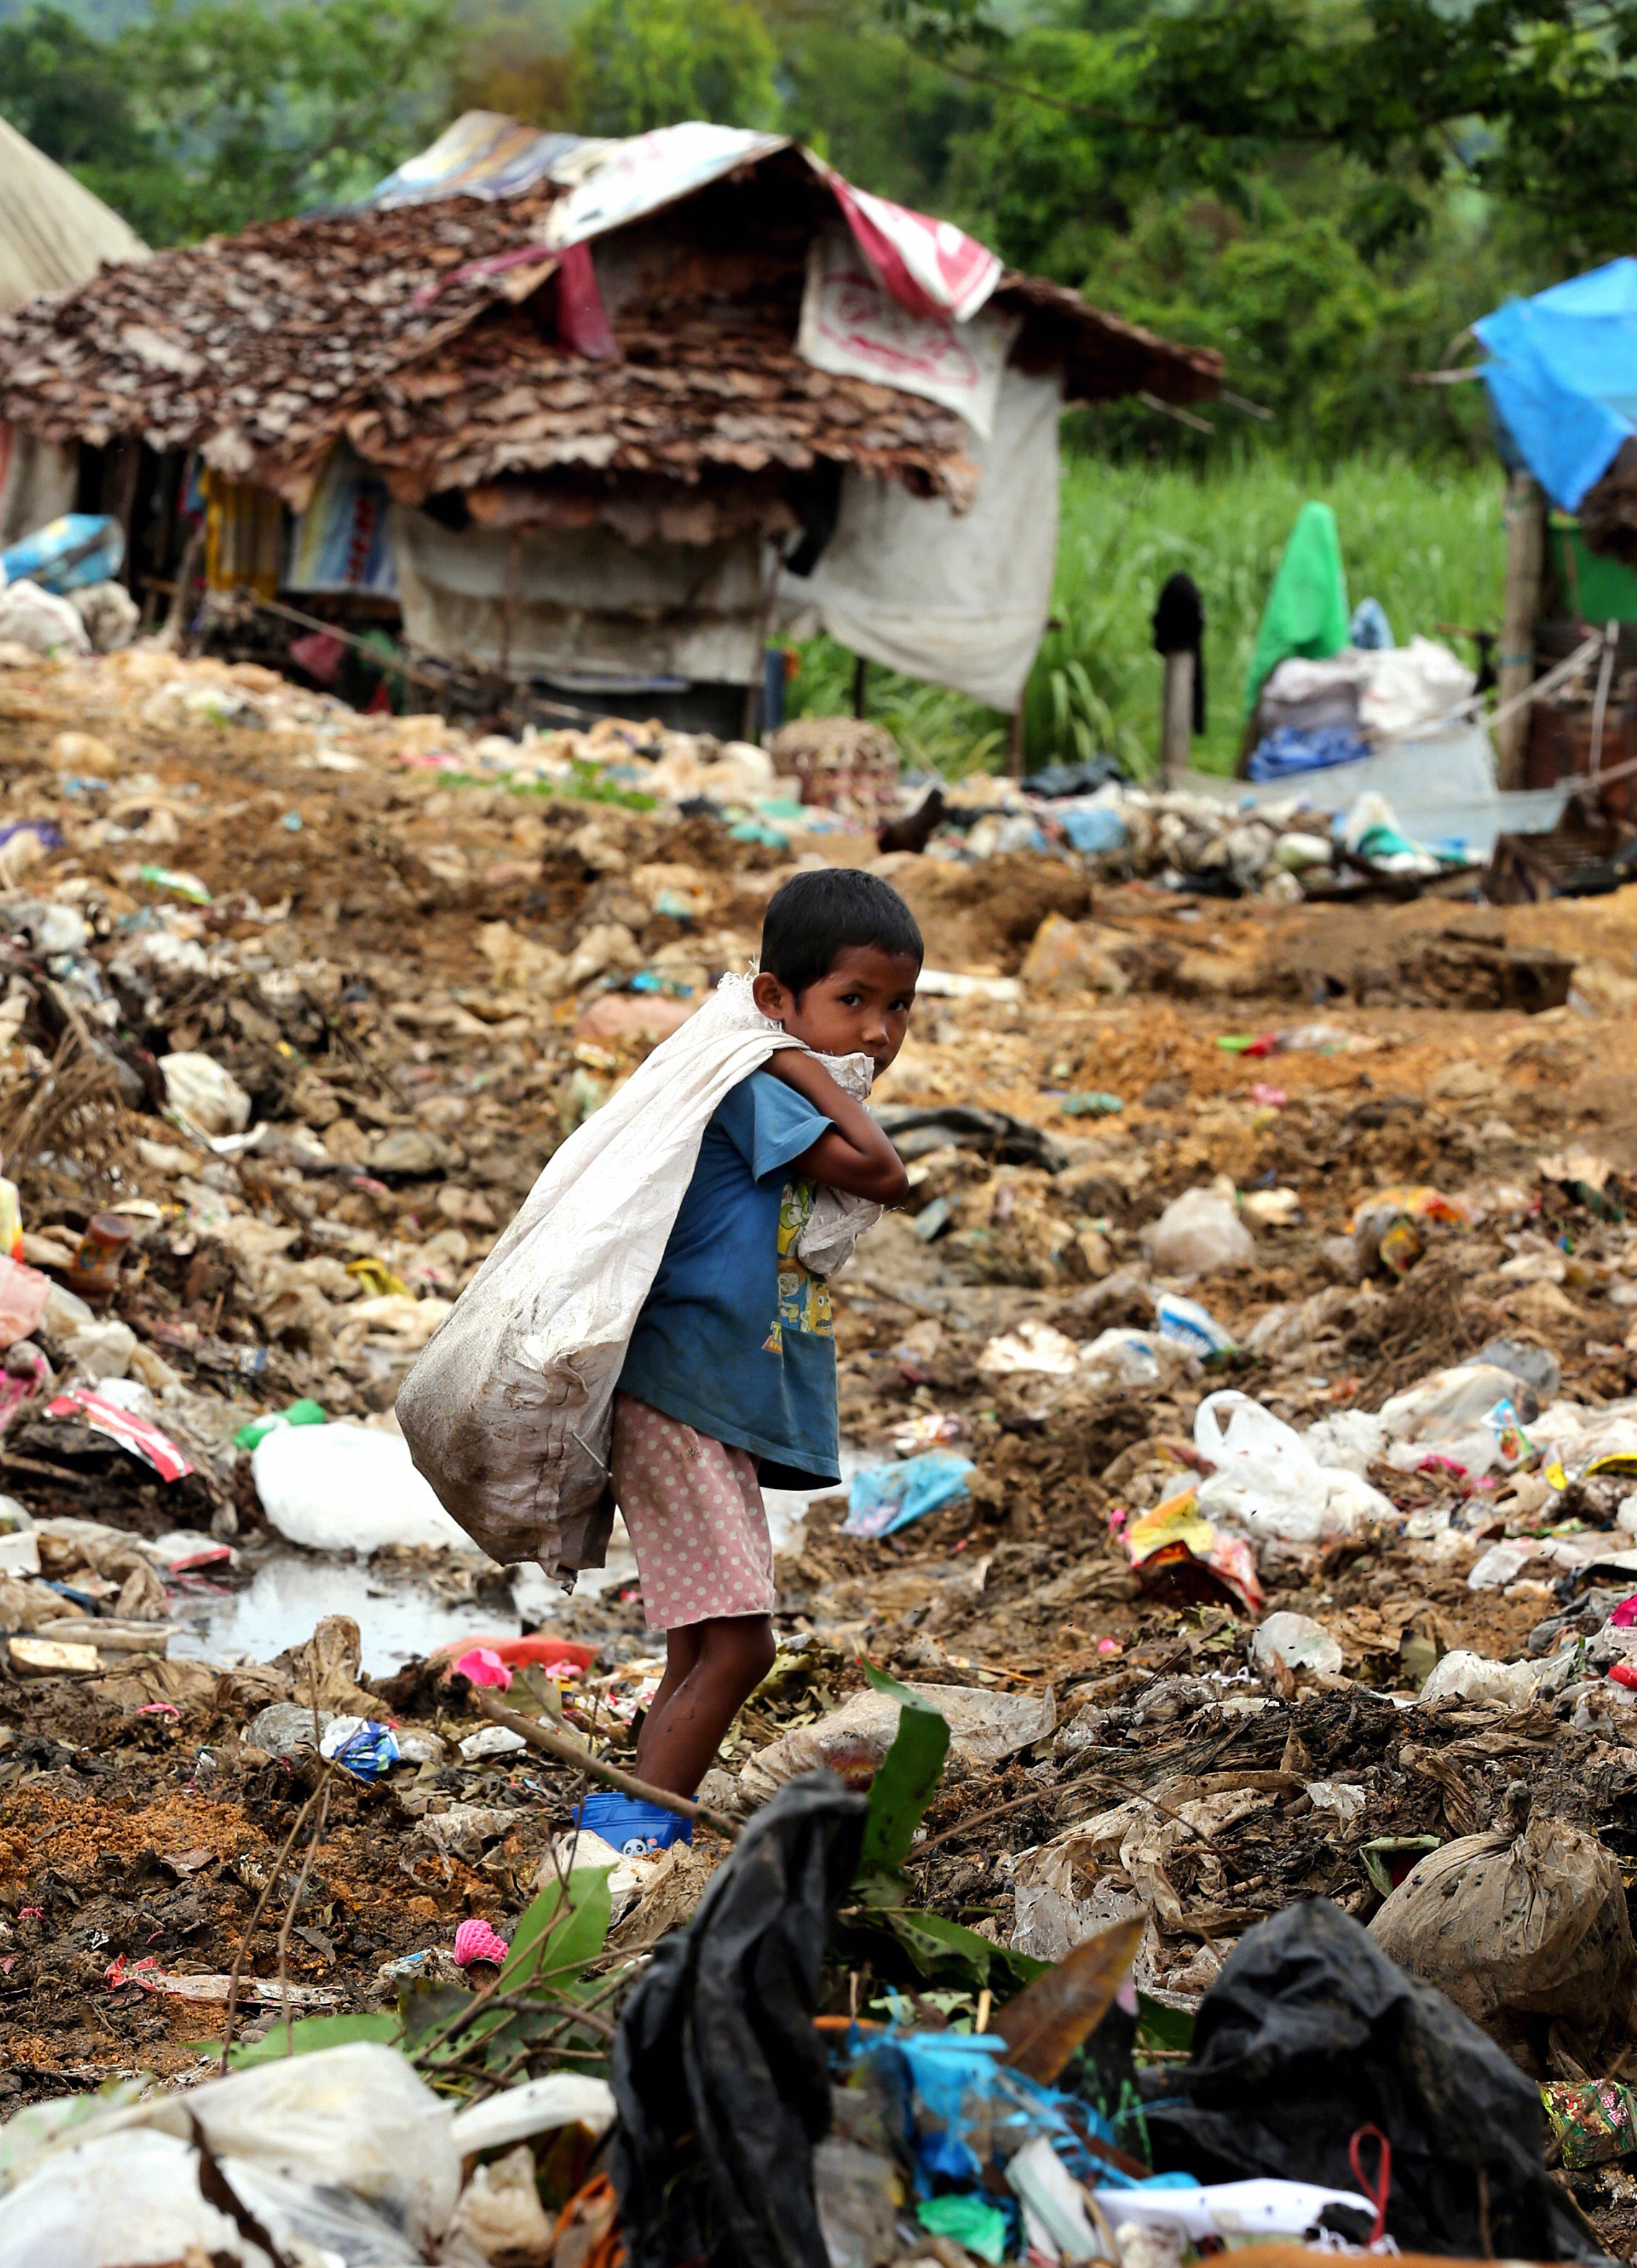 An illegal-immigrant boy from Burma works at mountains of rubbish in Mae Sot, Thailand, on July 18, 2013